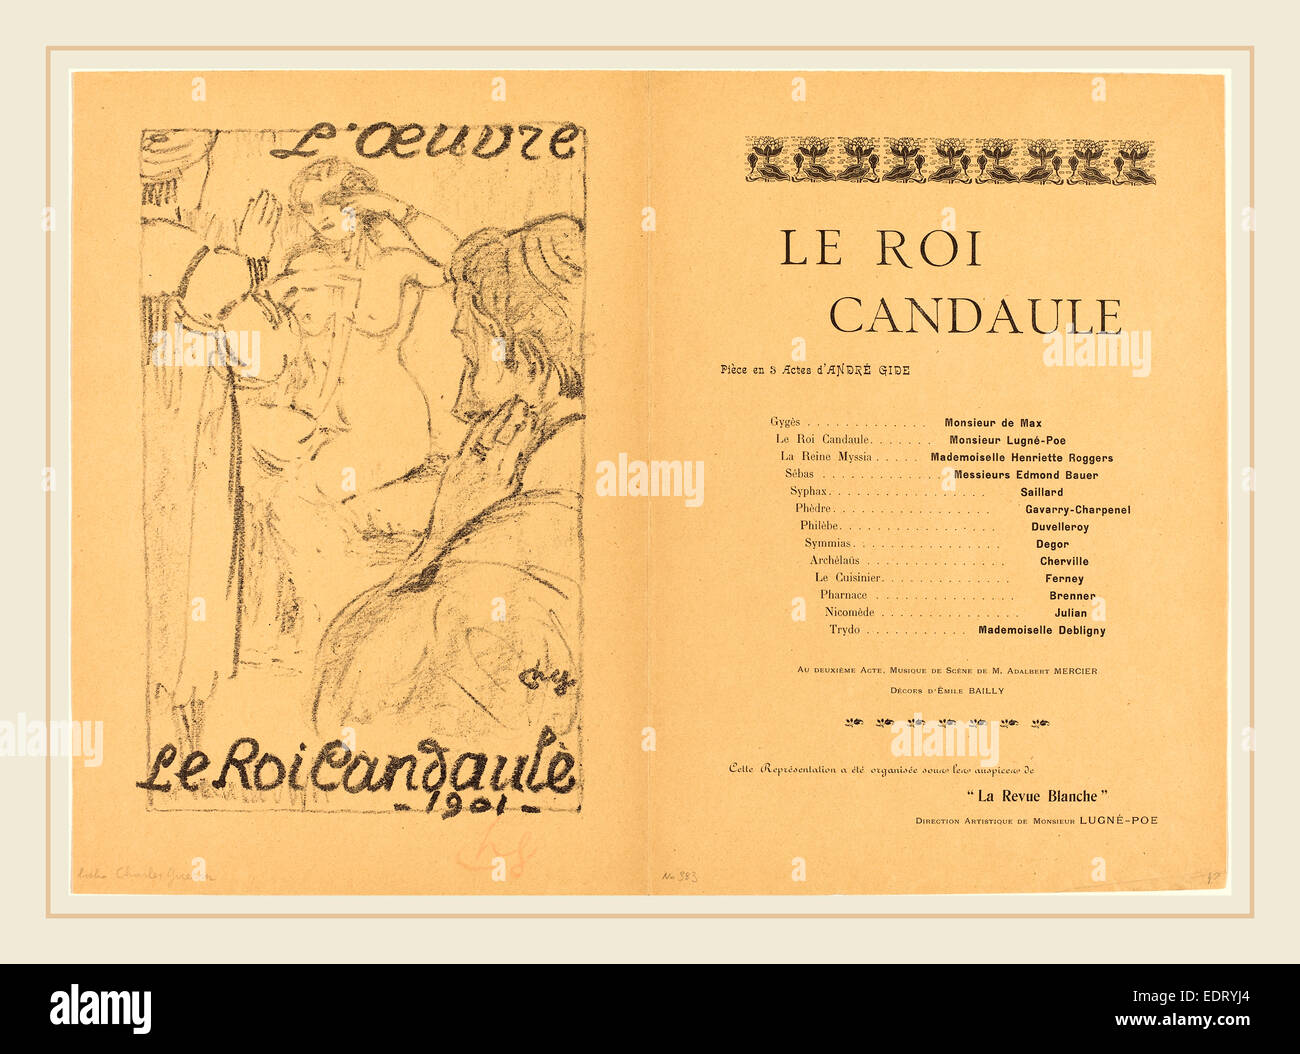 Charles Guérin, Le Roi Candaule, French, 1875-1939, 1901, lithograph in black on wove paper - Stock Image